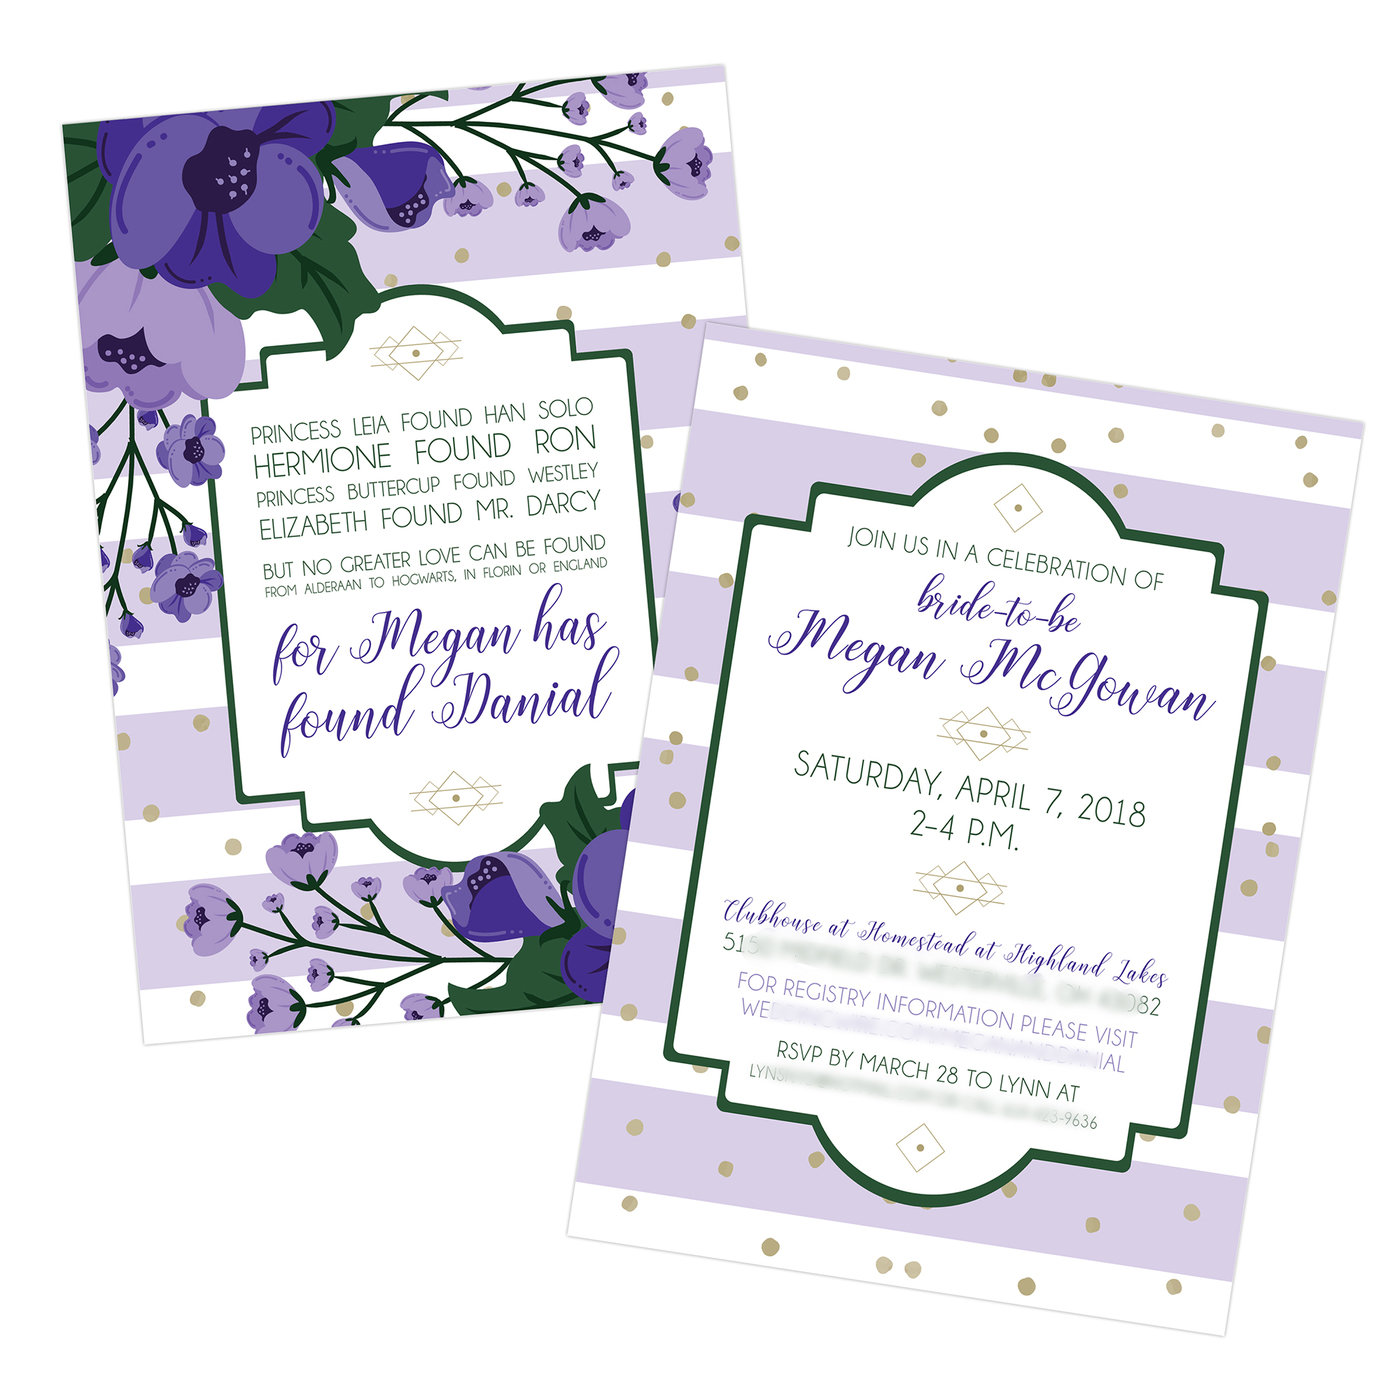 Invitations By Kate Paullin At Coroflot Com